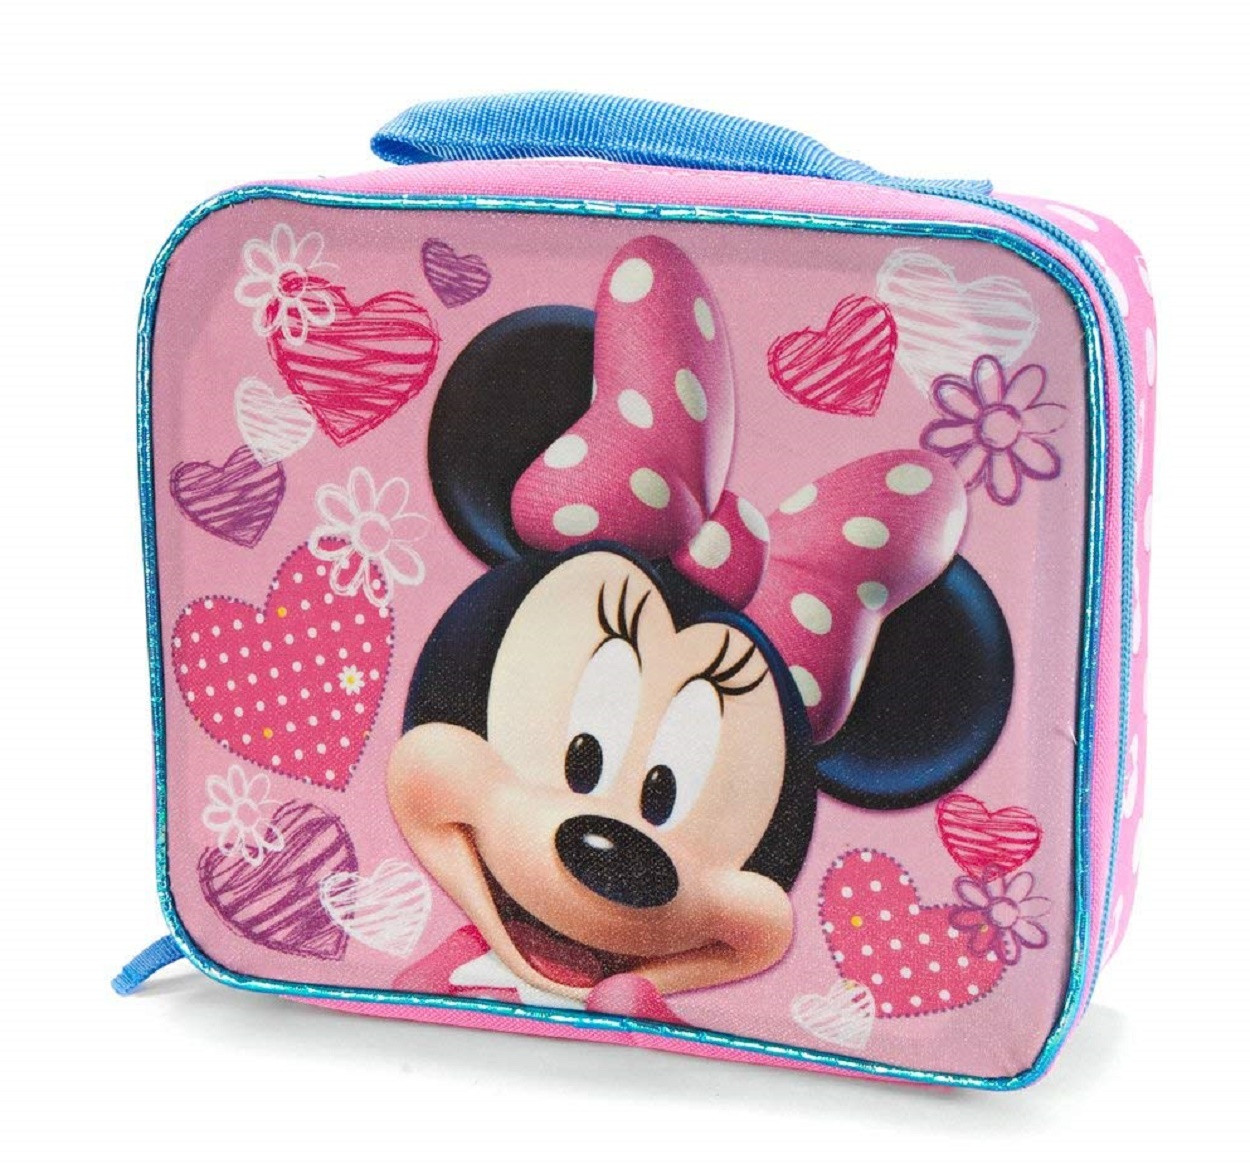 Lunch Box - Minnie Mouse - Insulated - Hearts